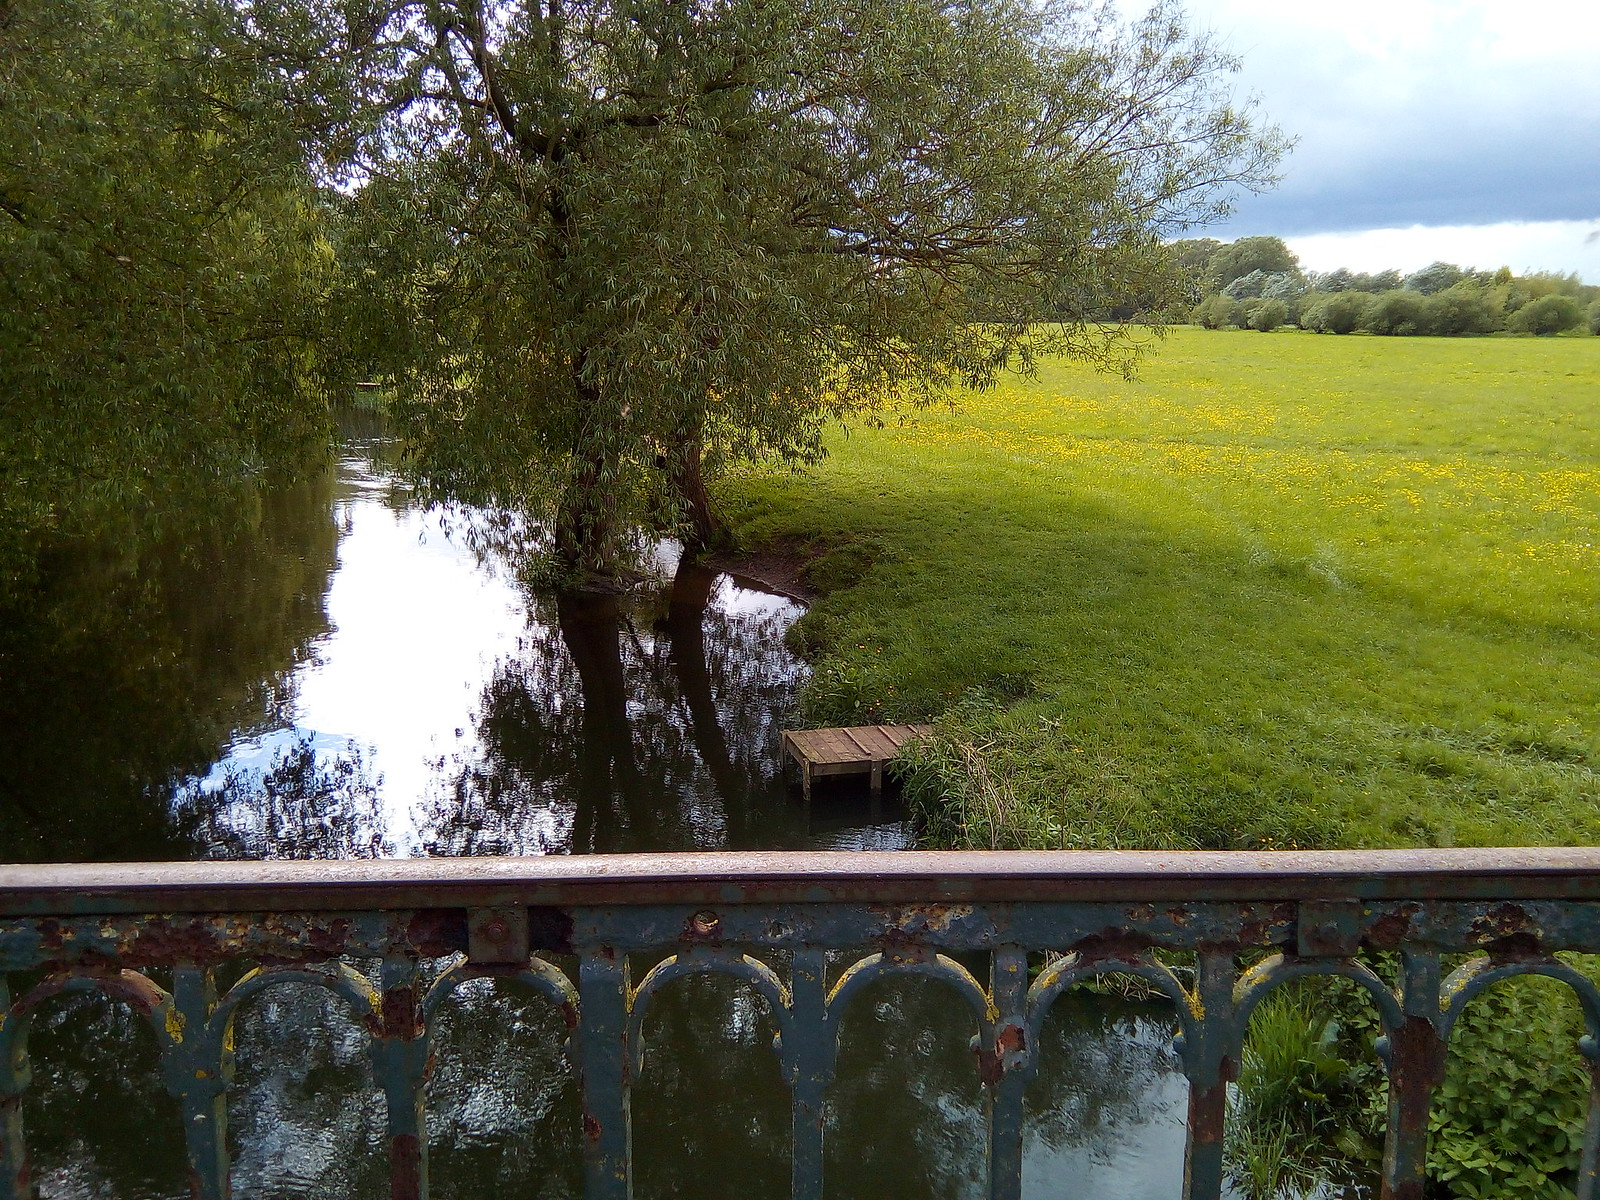 River Thame and buttercups